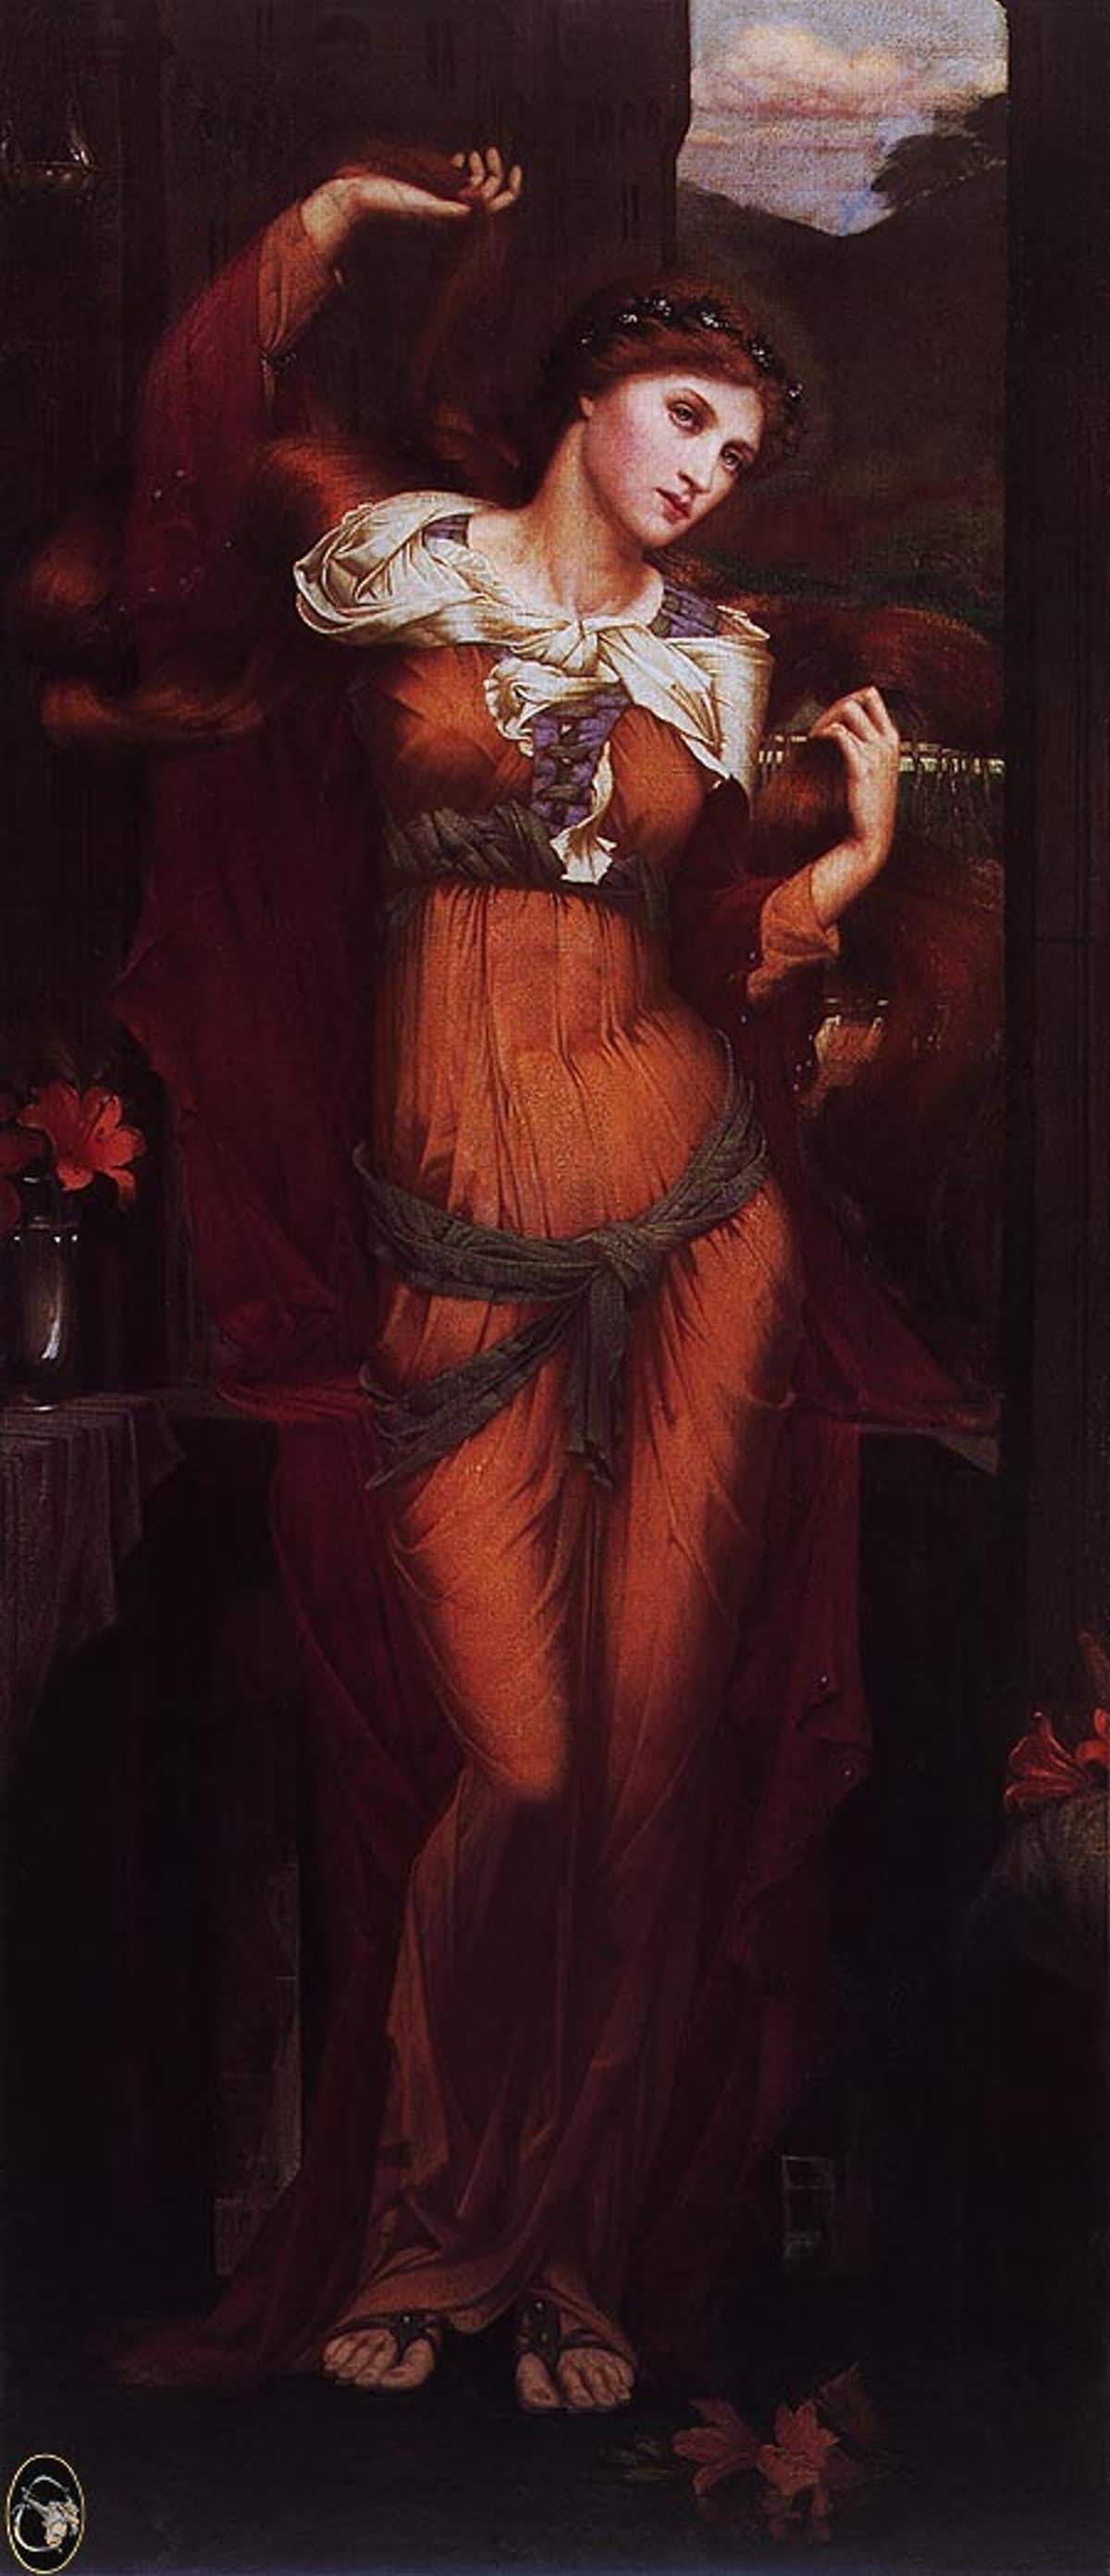 Morgan le Fay depicted as witch and temptress.